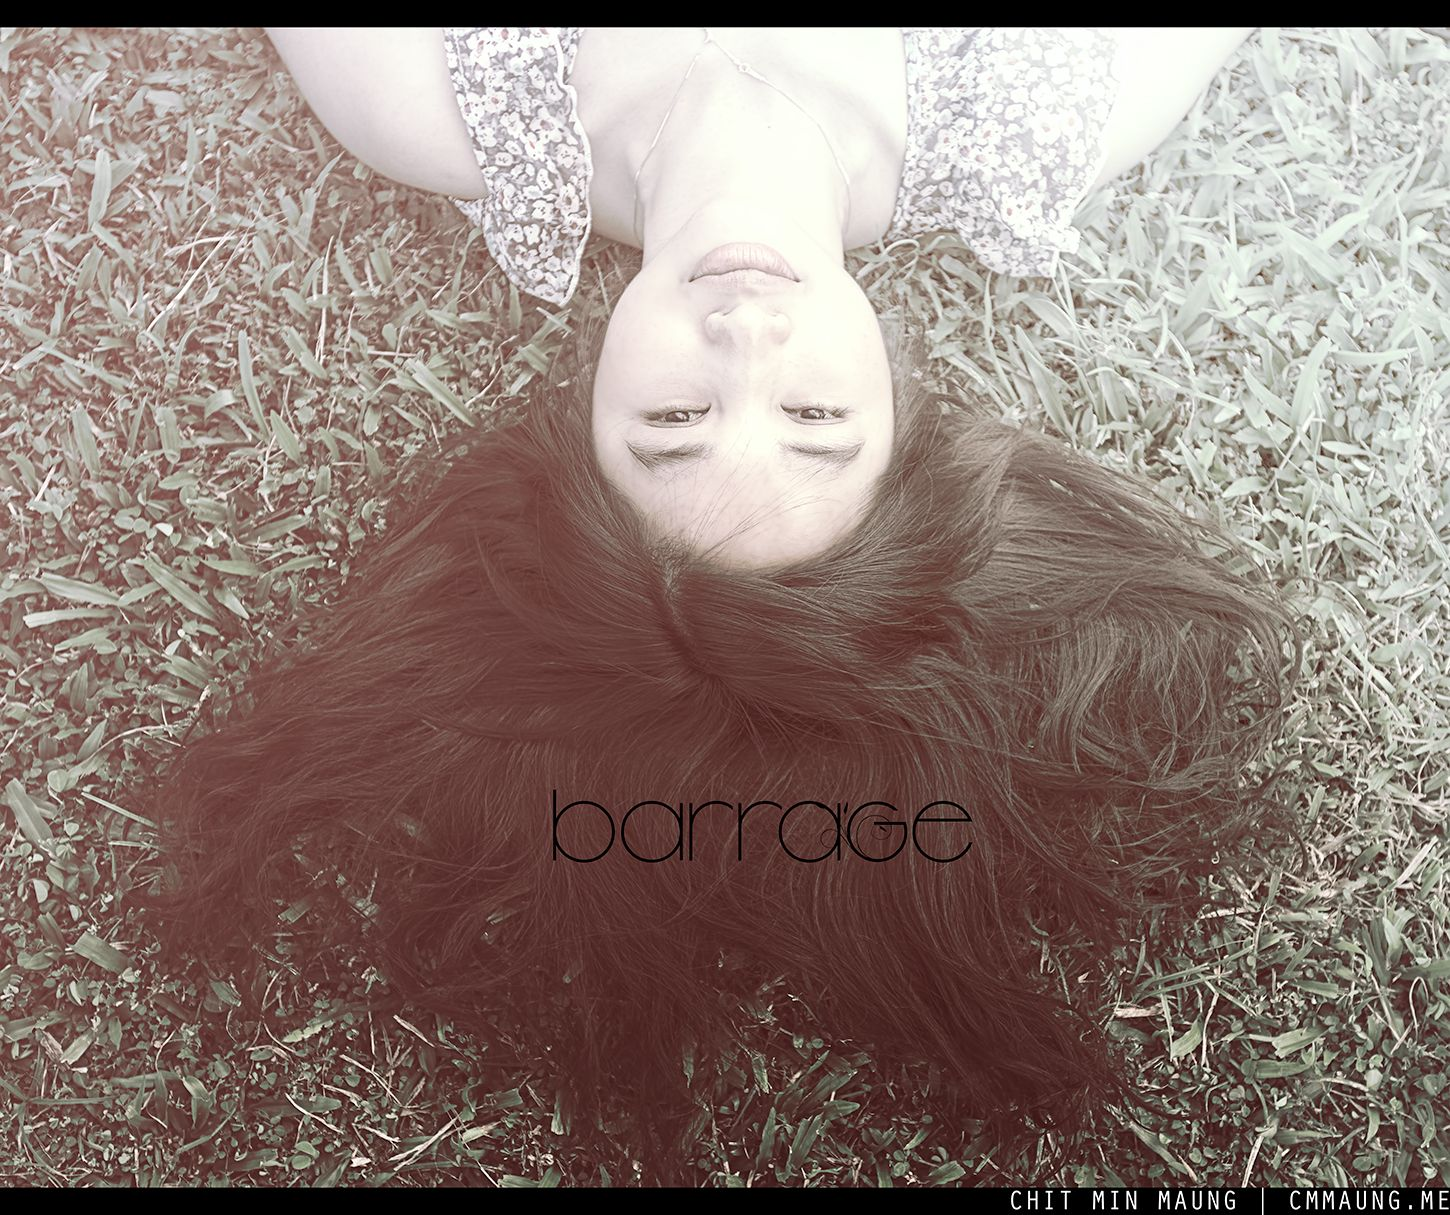 BARRAGE, Feel The Earth